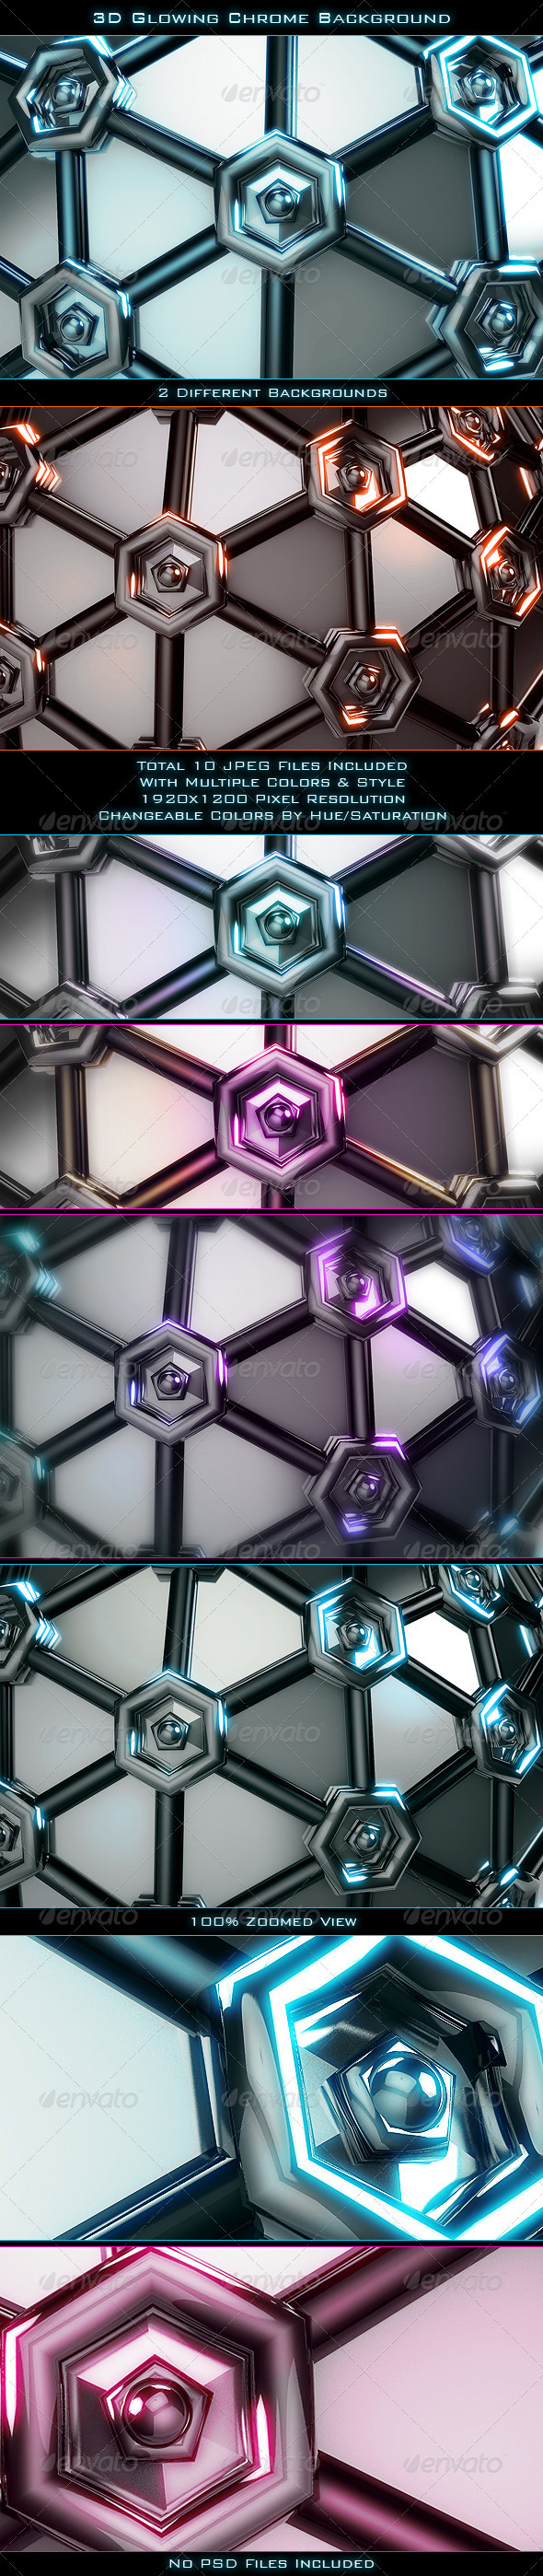 3D Glowing Chrome Background - 3D Backgrounds